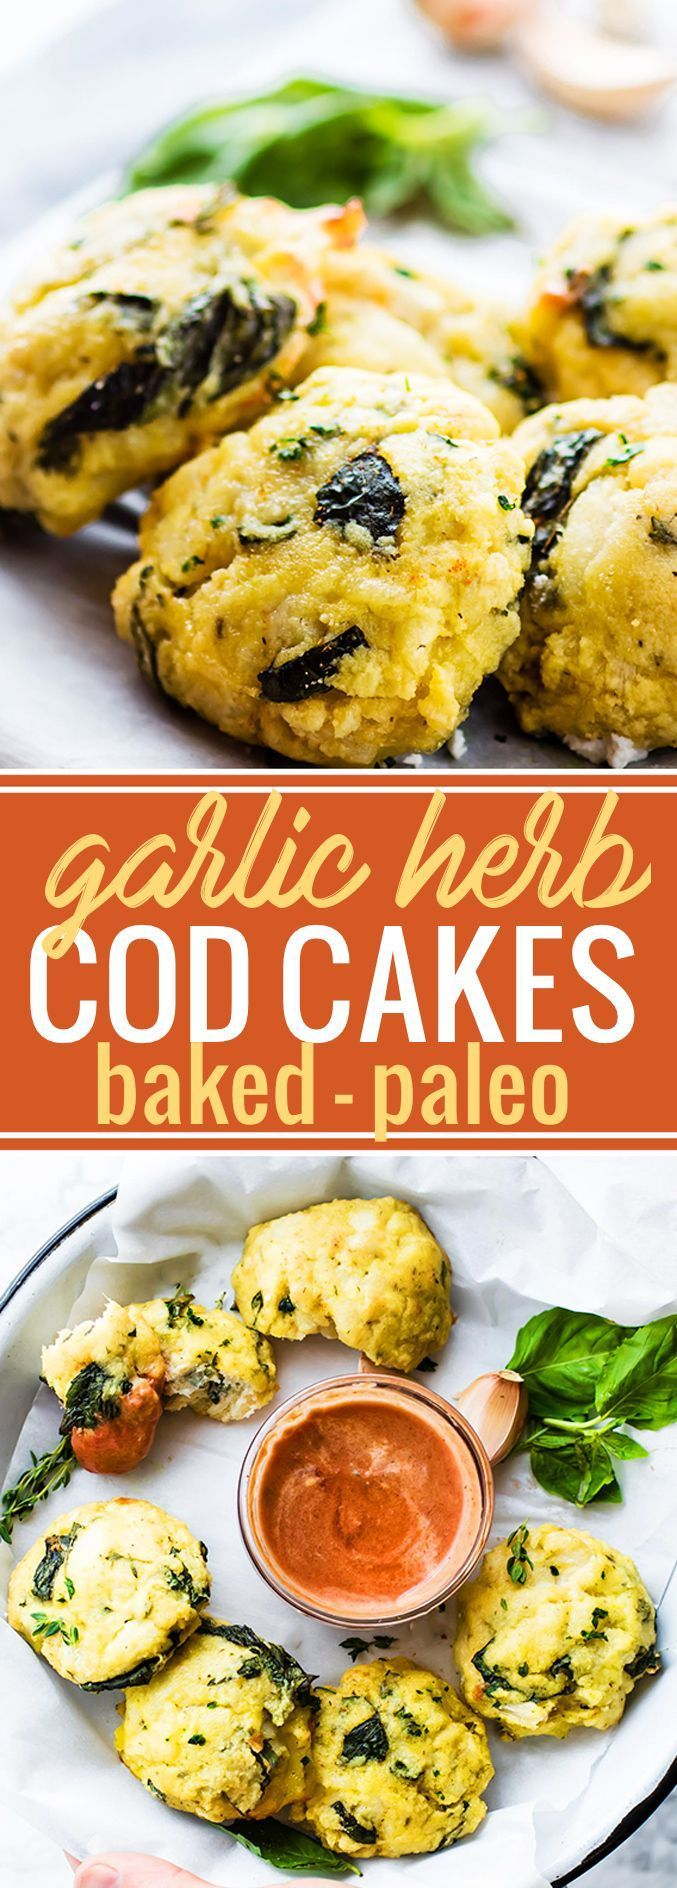 Paleo Garlic Herb Baked Cod Cakes with a creamy marina sauce! A light, easy, and paleo friendly baked cod fish cake recipe you'll want to make again and again. Serve with a flavorful marinara sauce for a light appetizer or low carb meal.